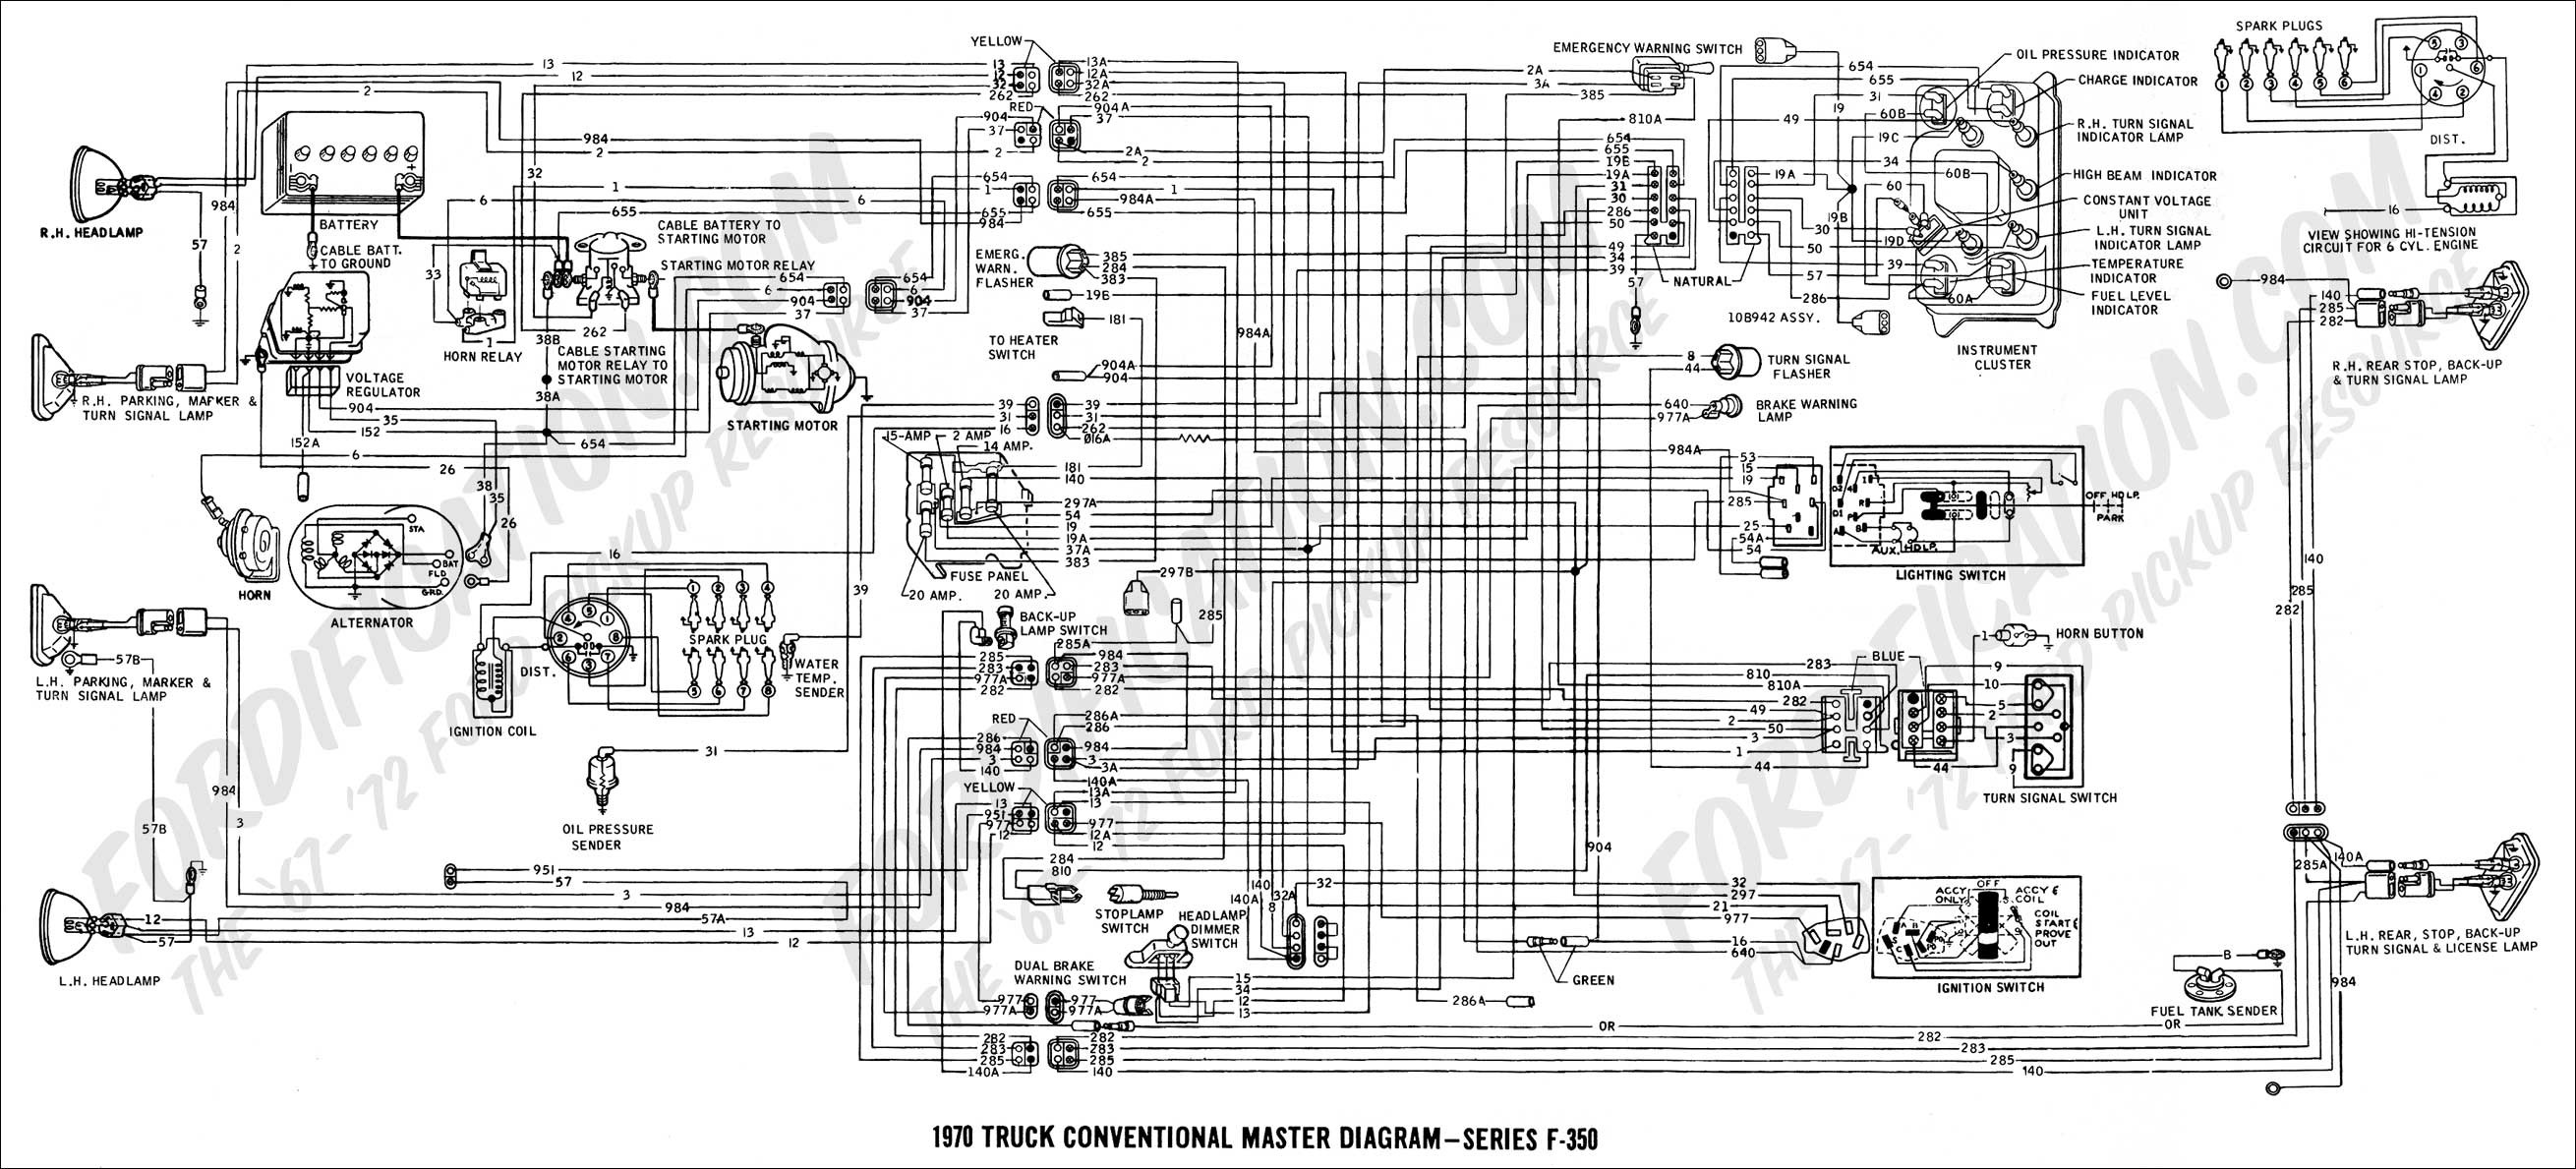 Amazing Freightliner Wiring Diagrams Image - The Wire - magnox.info